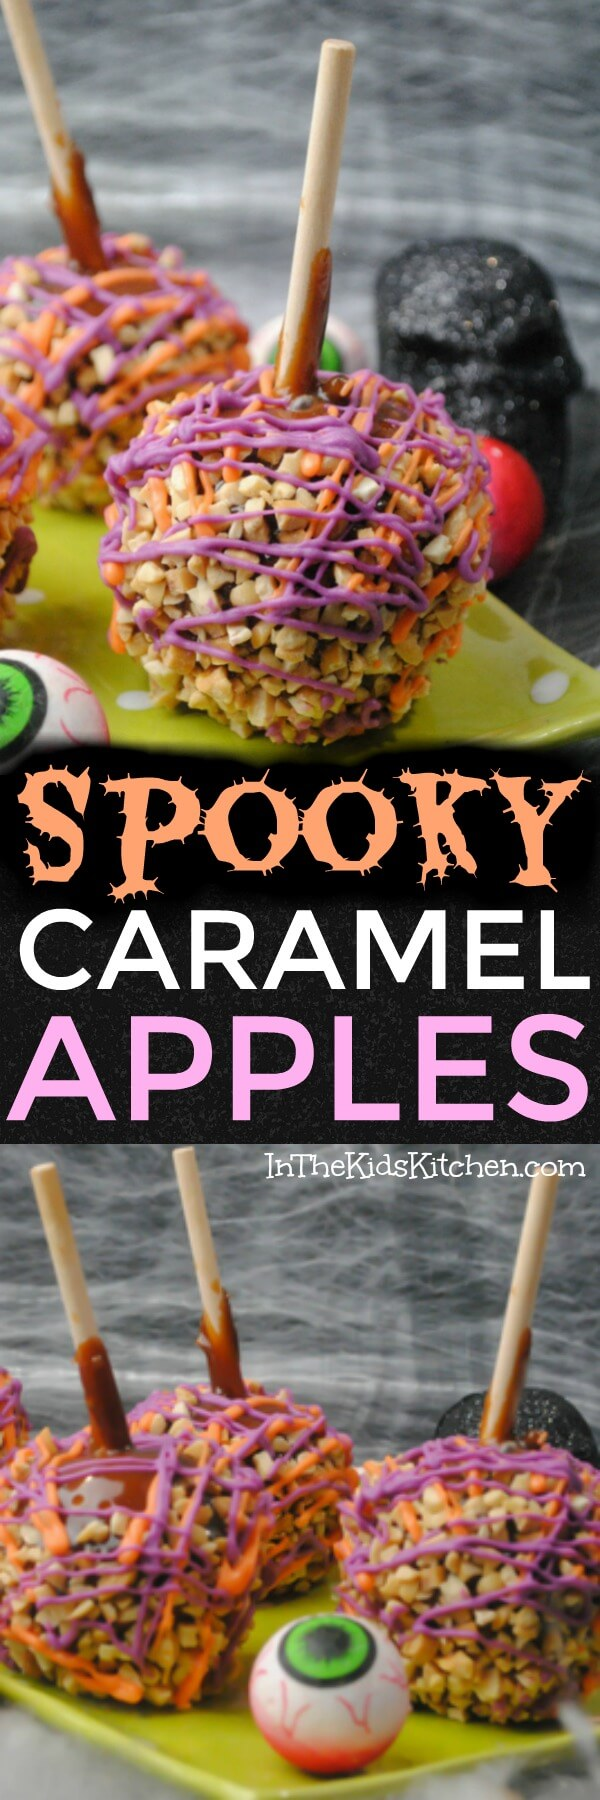 A spooky twist on a classic treat — both kids and grown-ups will love these crazy colorful Halloween Caramel Apples!